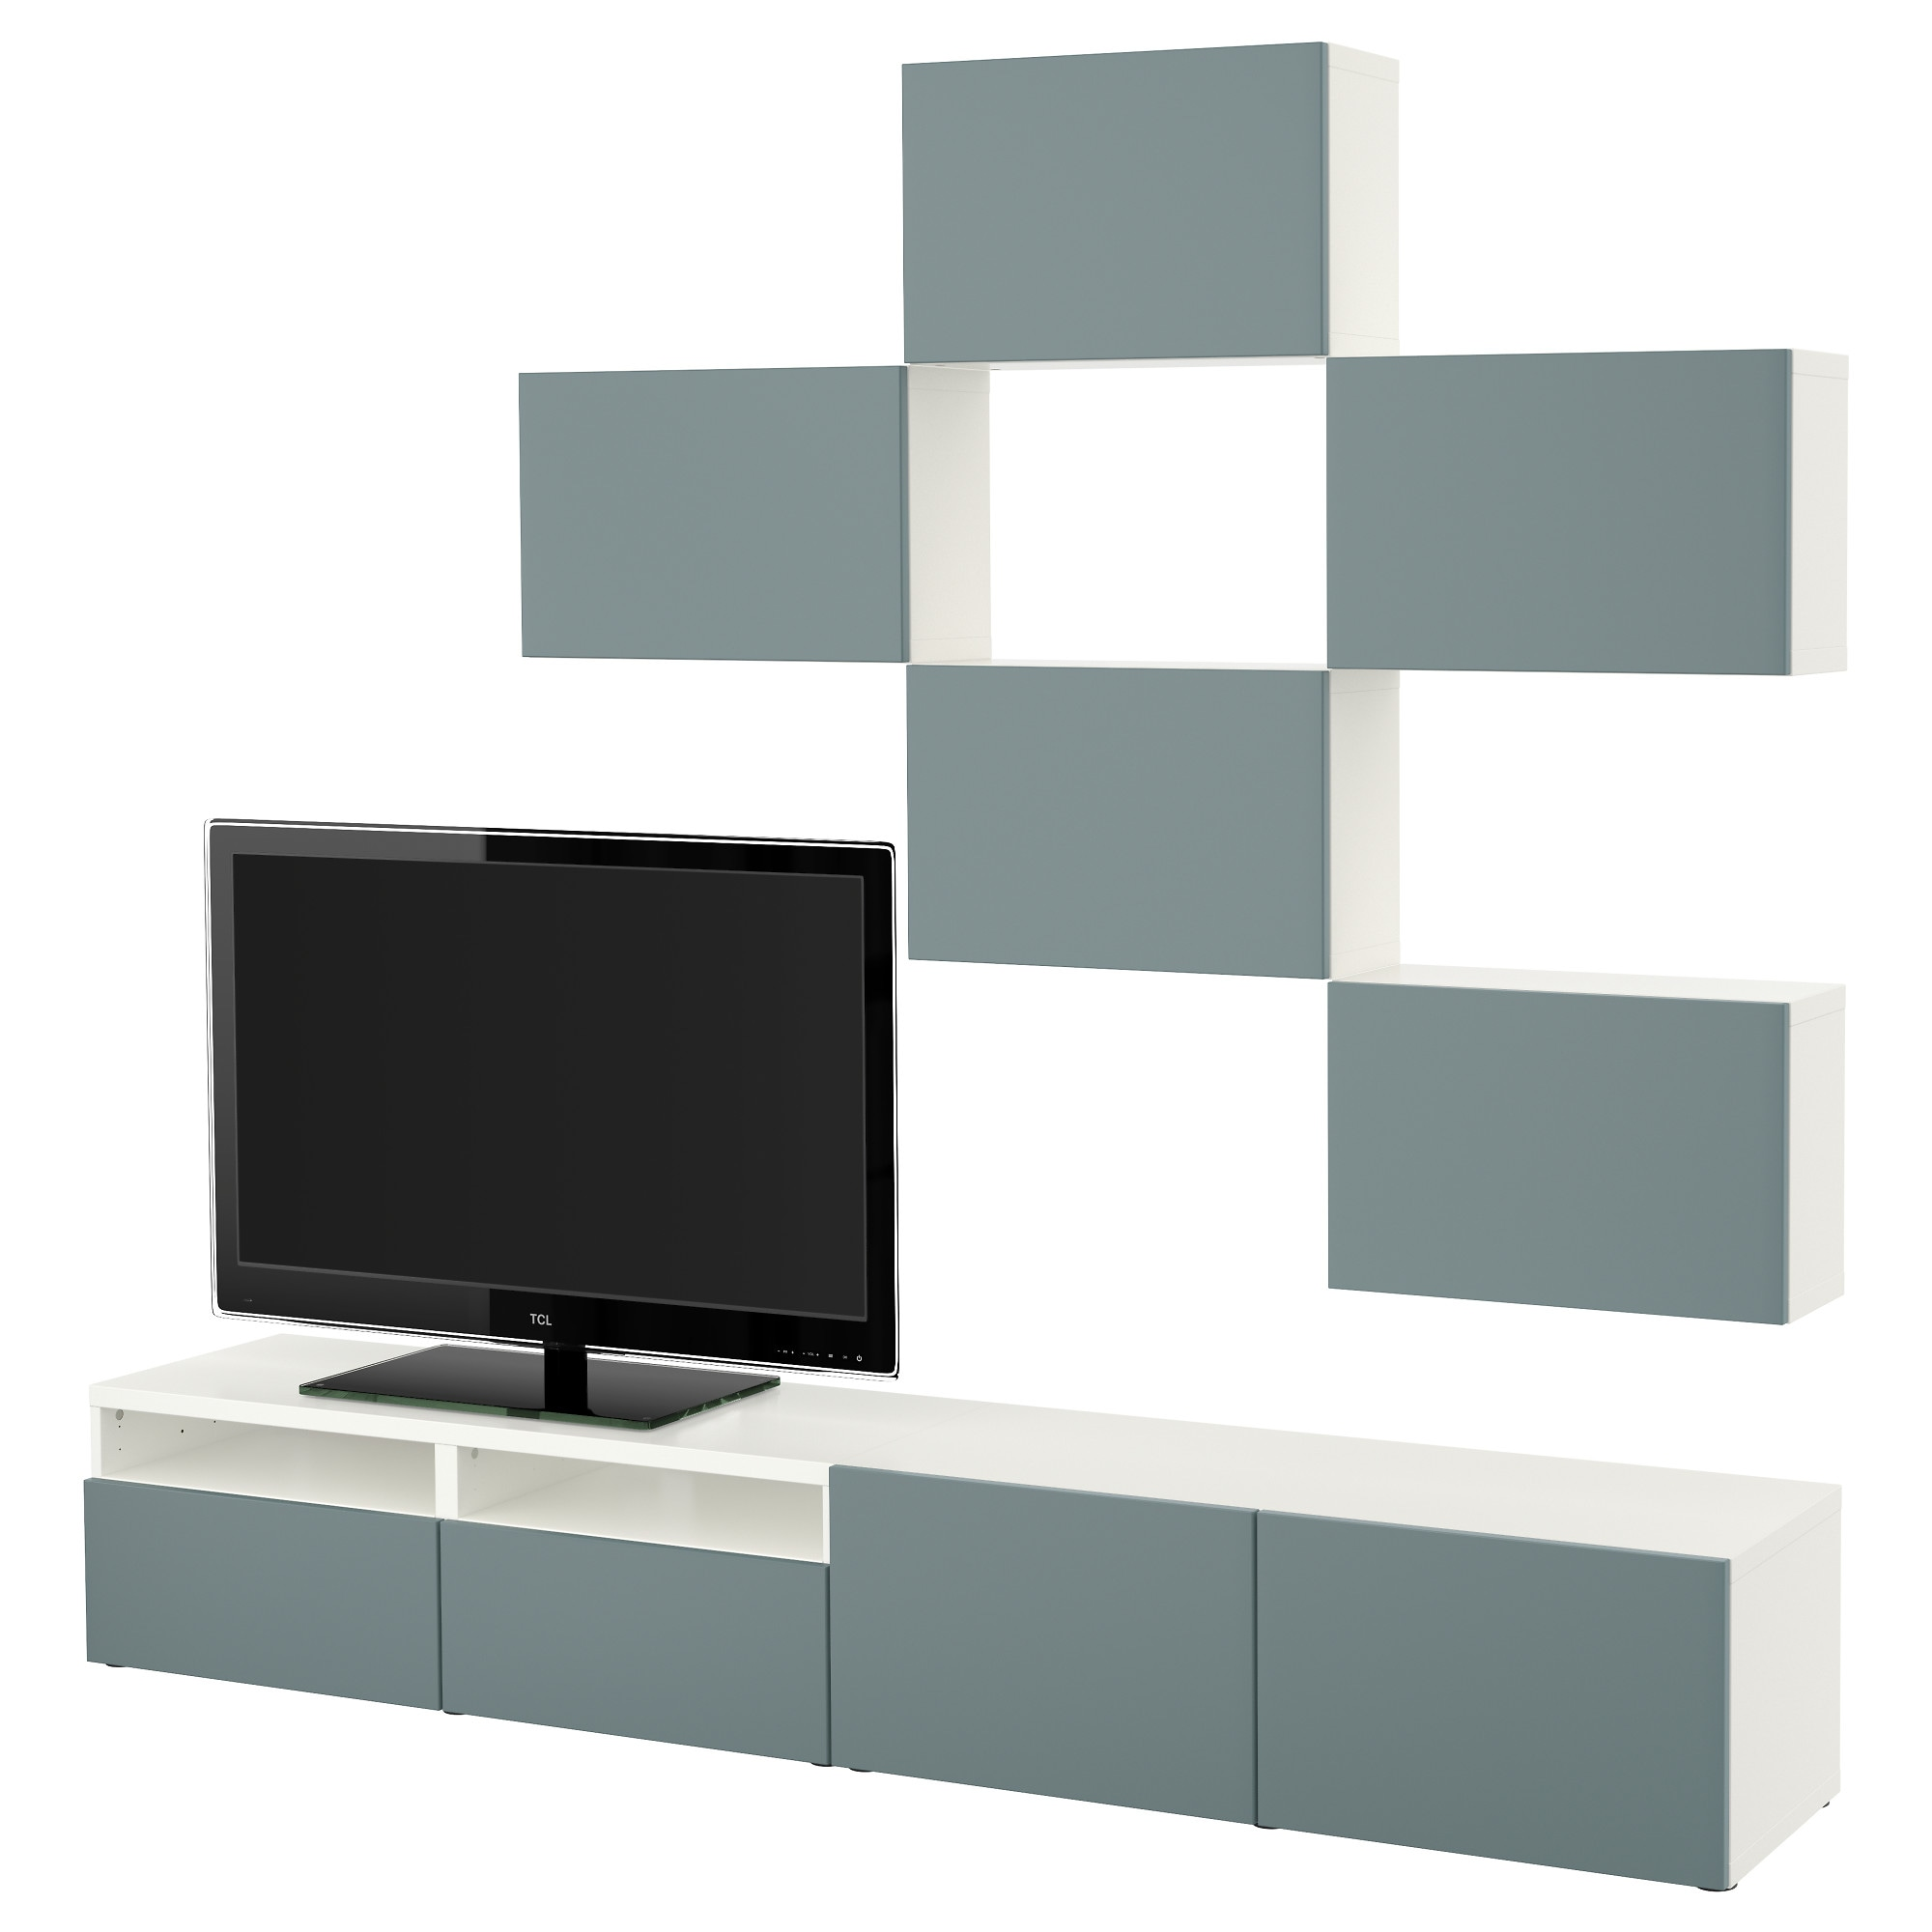 Best Tv Storage Combination White Valviken Gray Turquoise  # Meuble Tv Ferme Ikea